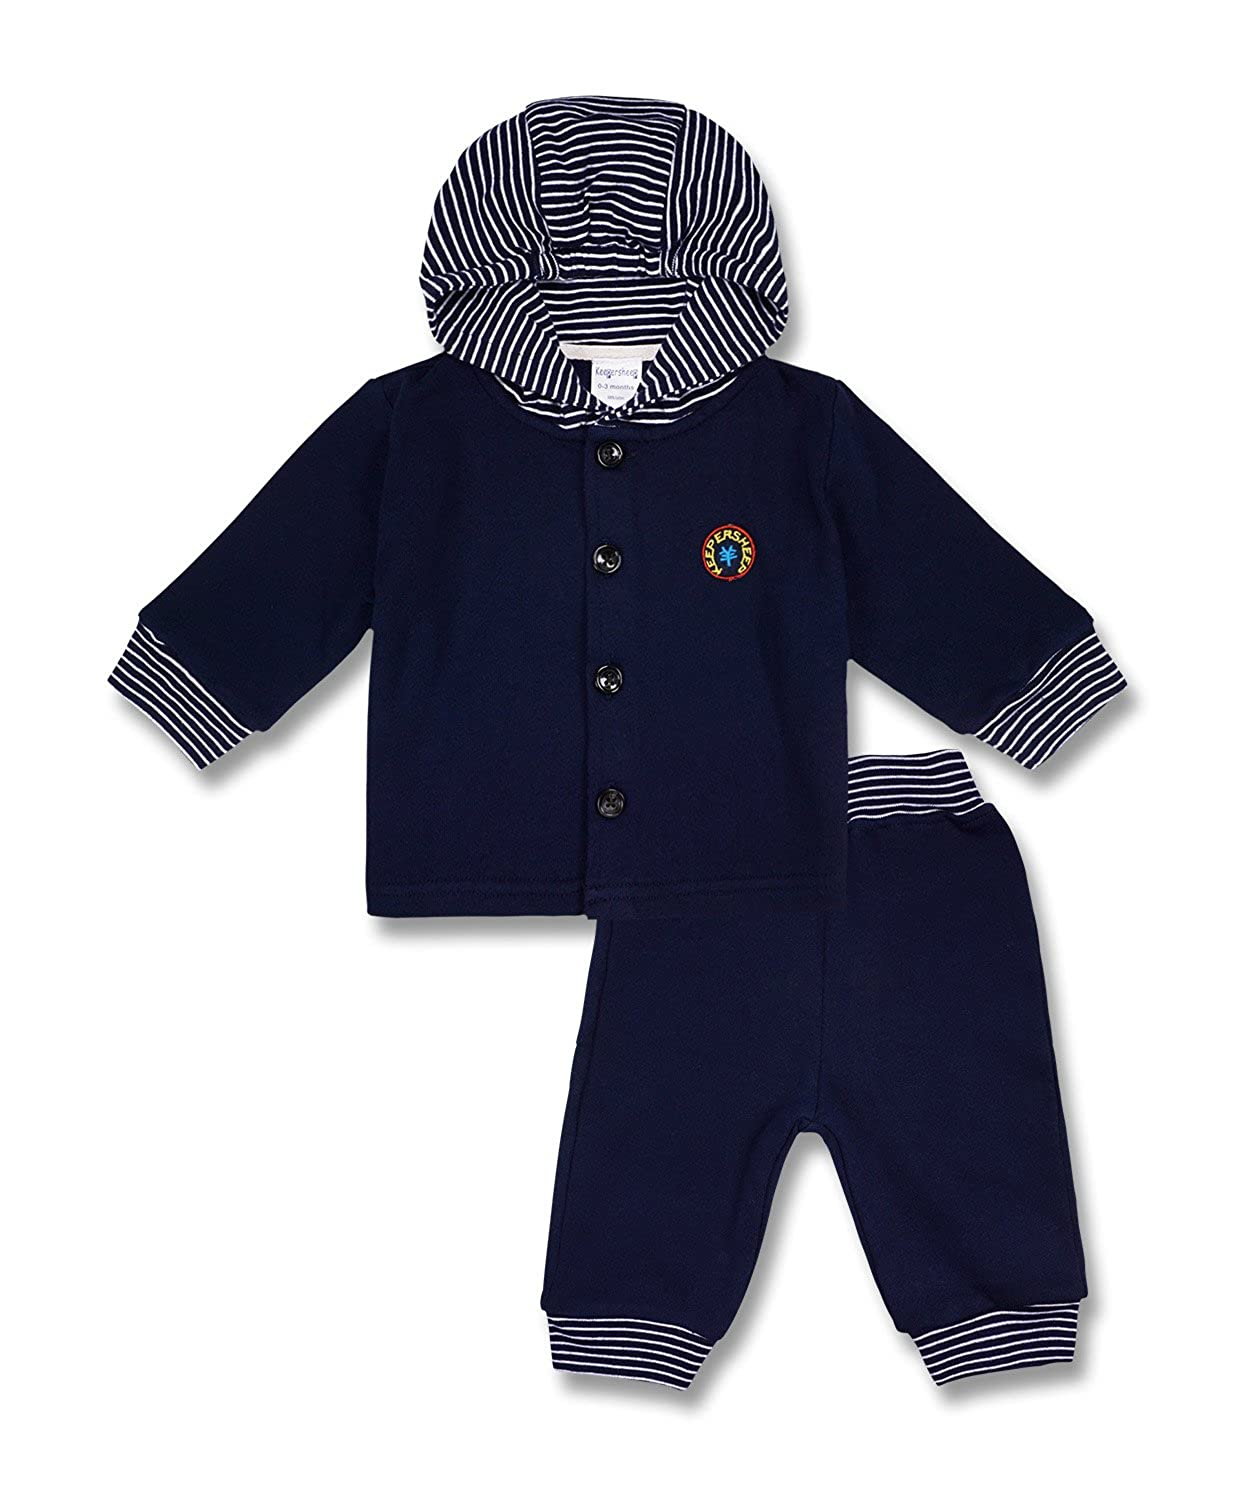 Newborn Kids Tops and Bottoms 2 Packs Set Keepersheep Infant Todder Baby Boys Long-Sleeve Hoodie and Pants Outfits Sets